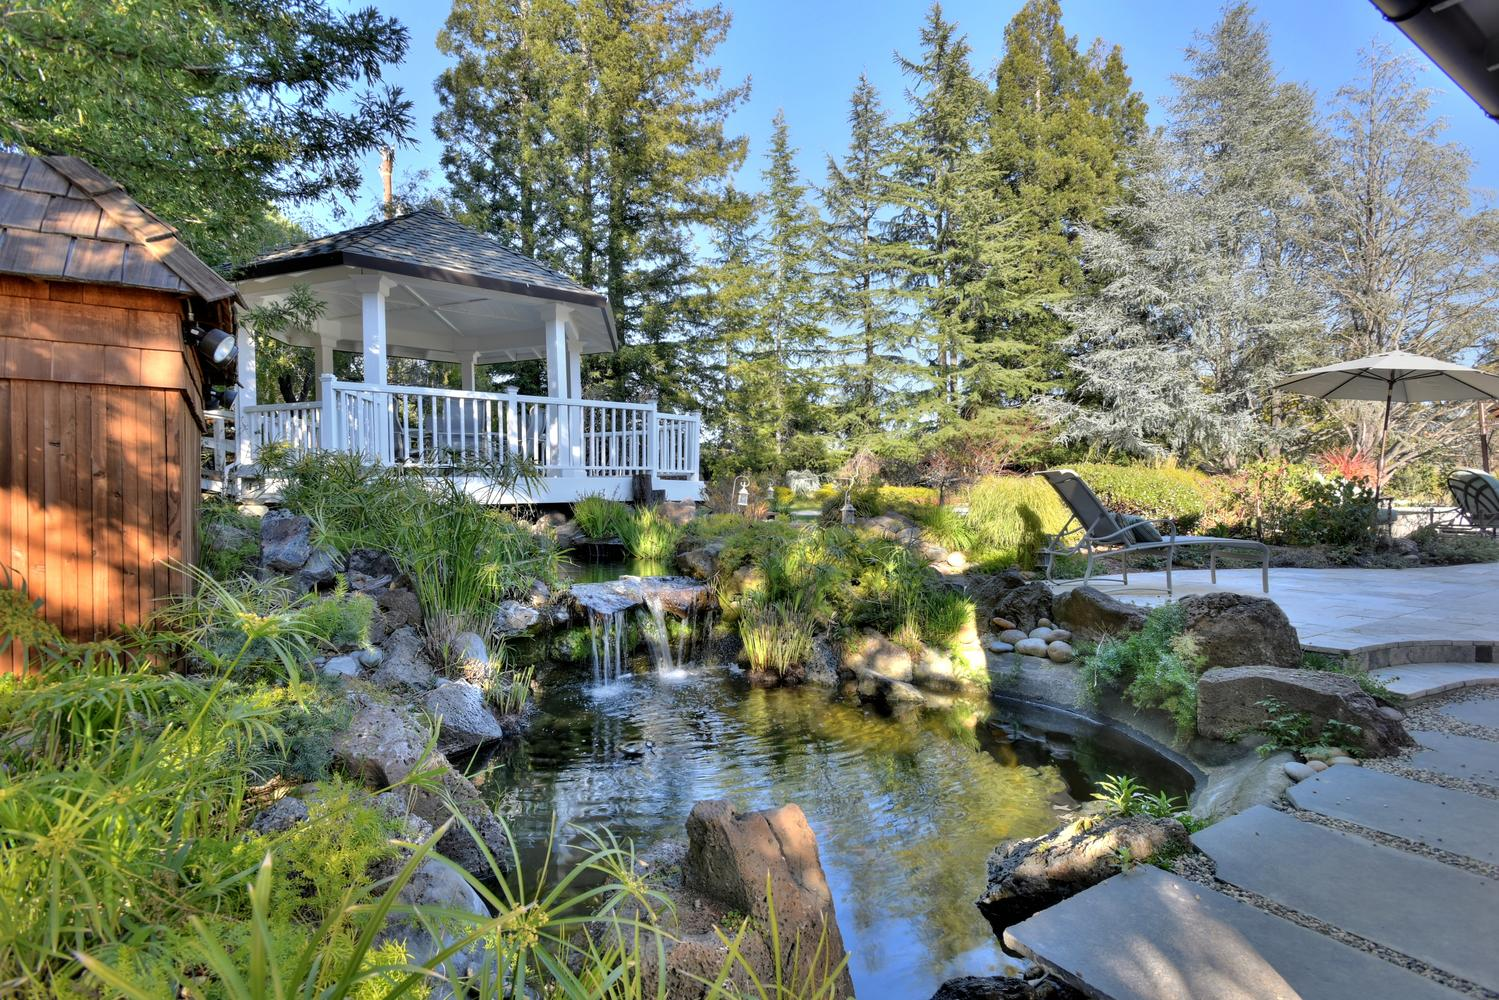 15977 Grandview Dr Monte-large-051-50-Pond and Gazebo-1500x1000-72dpi.jpg